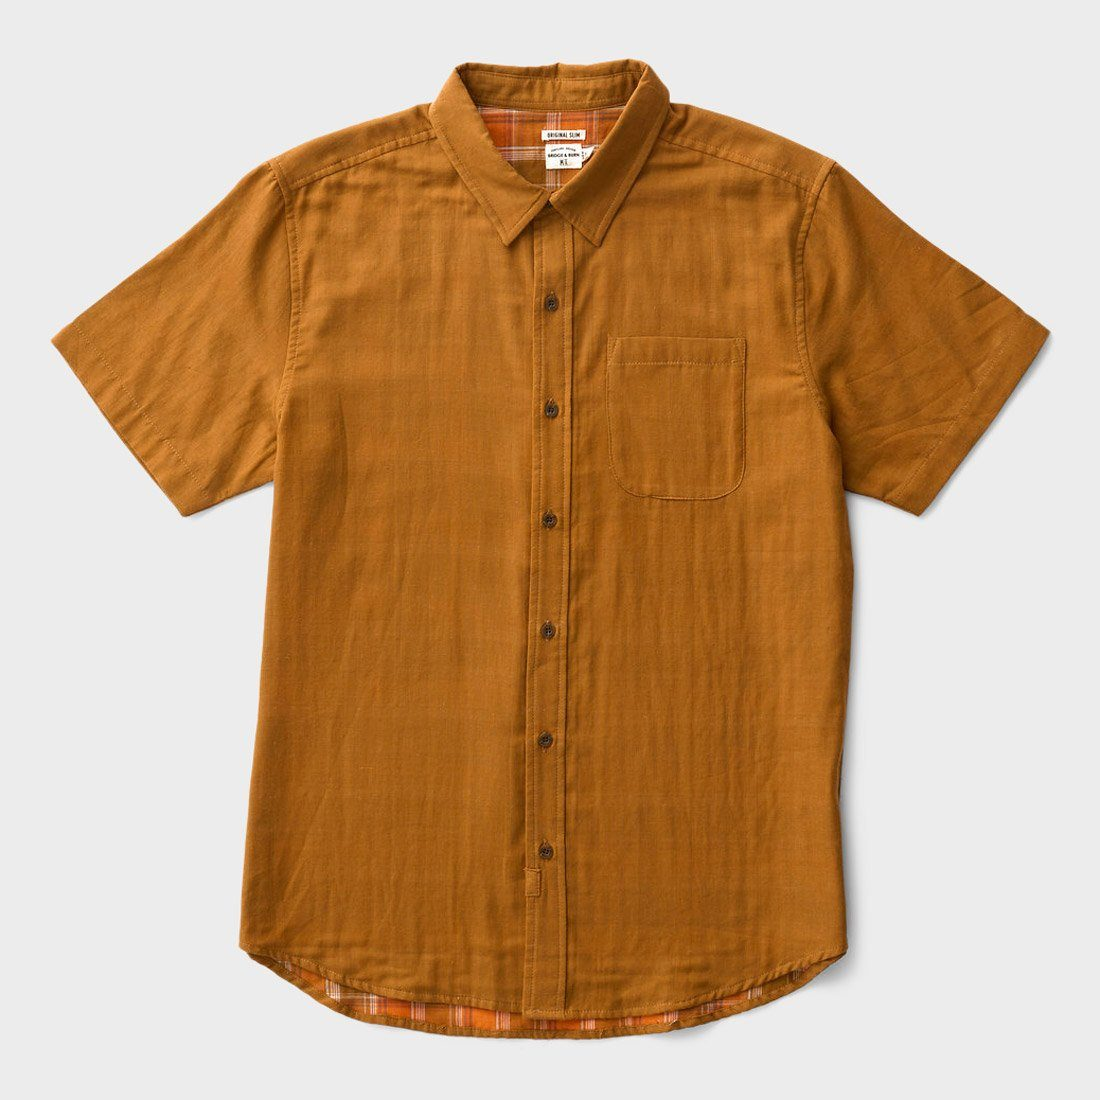 Bridge & Burn Harbor S/S Woven Tan Doublecloth